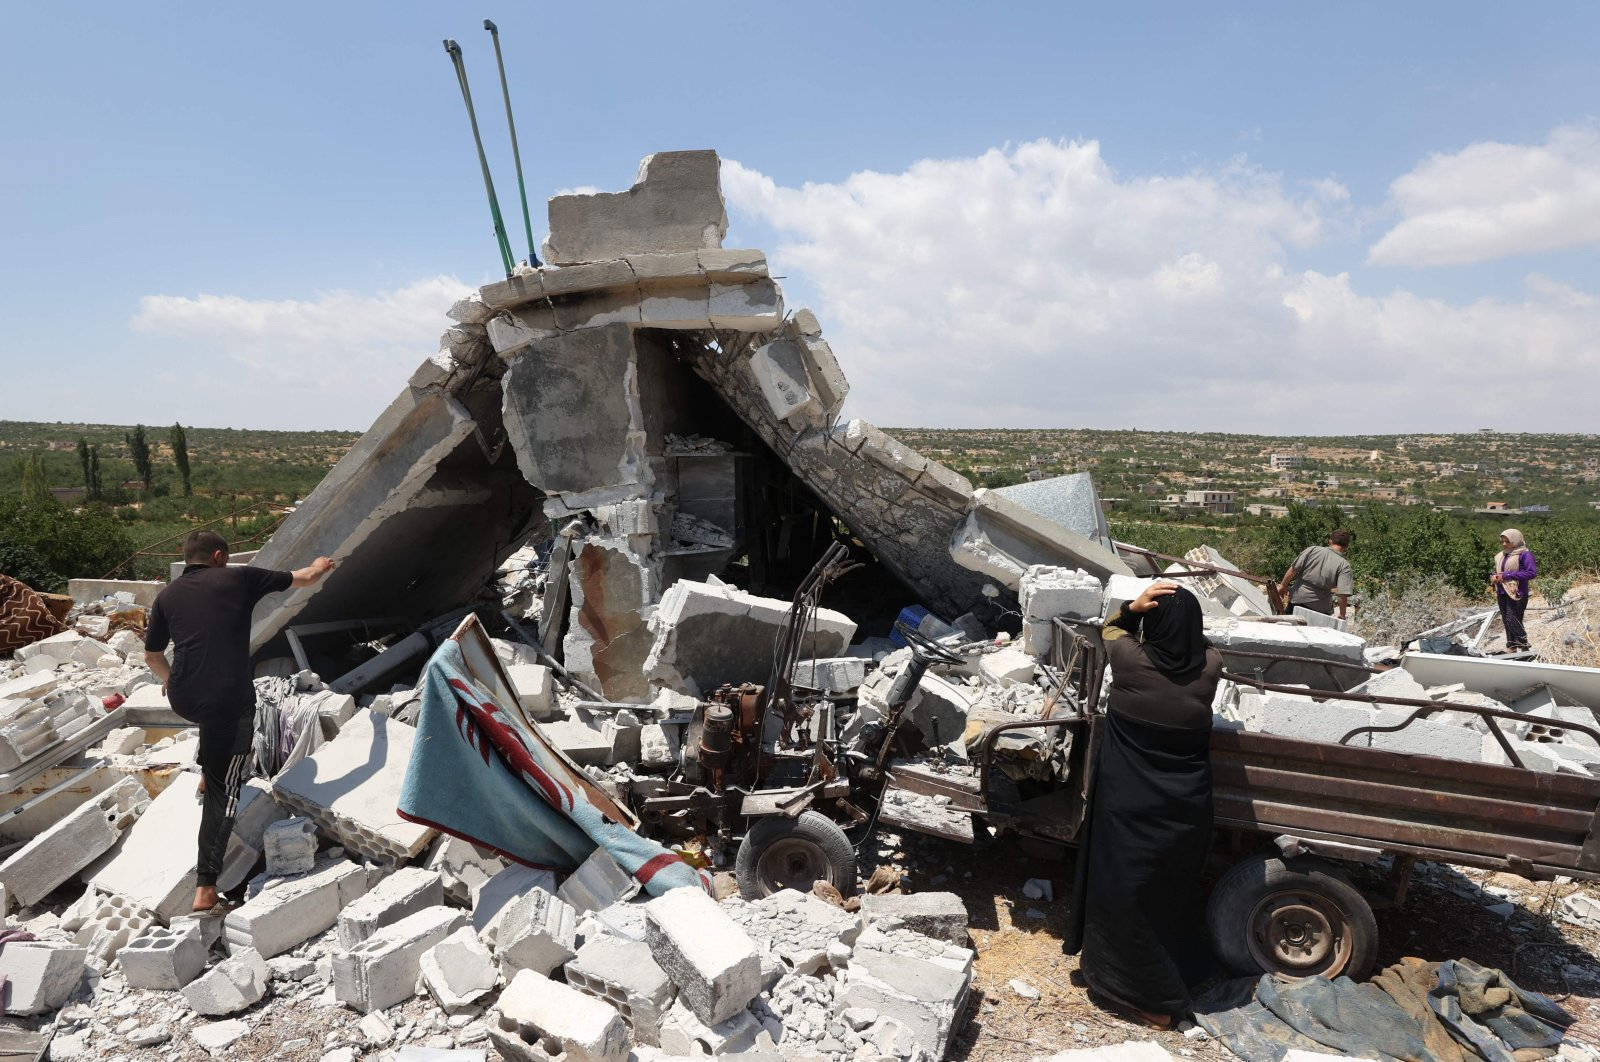 People salvage belongings from a house destoyed by a Russian missile attack in the Jabal al-Zawiya region in the south of Syria's opposition-held Idlib province, on July 4, 2021. (AFP Photo)